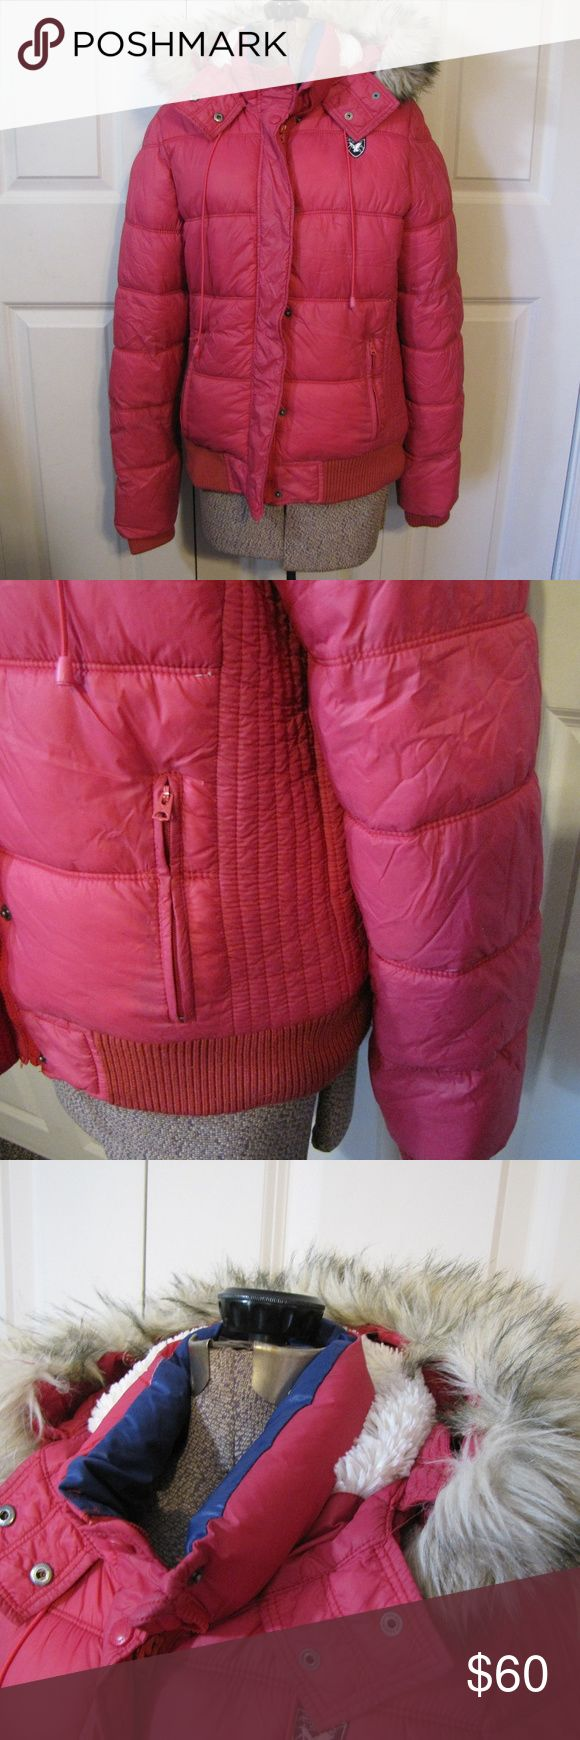 American Eagle Pink Puffer Fur Hooded Coat Excellent used condition American Eagle puffer. This baby is warm! The fur on the hood is not washable and is removable. There are two outer zipper pockets. A bit of piling on the sleeves and bottom. Sized XL. See pictures for materials. Measurements laid flat:  Armpit to armpit: about 19 1/2 inches Total length: about 25 inches American Eagle Outfitters Jackets & Coats Puffers